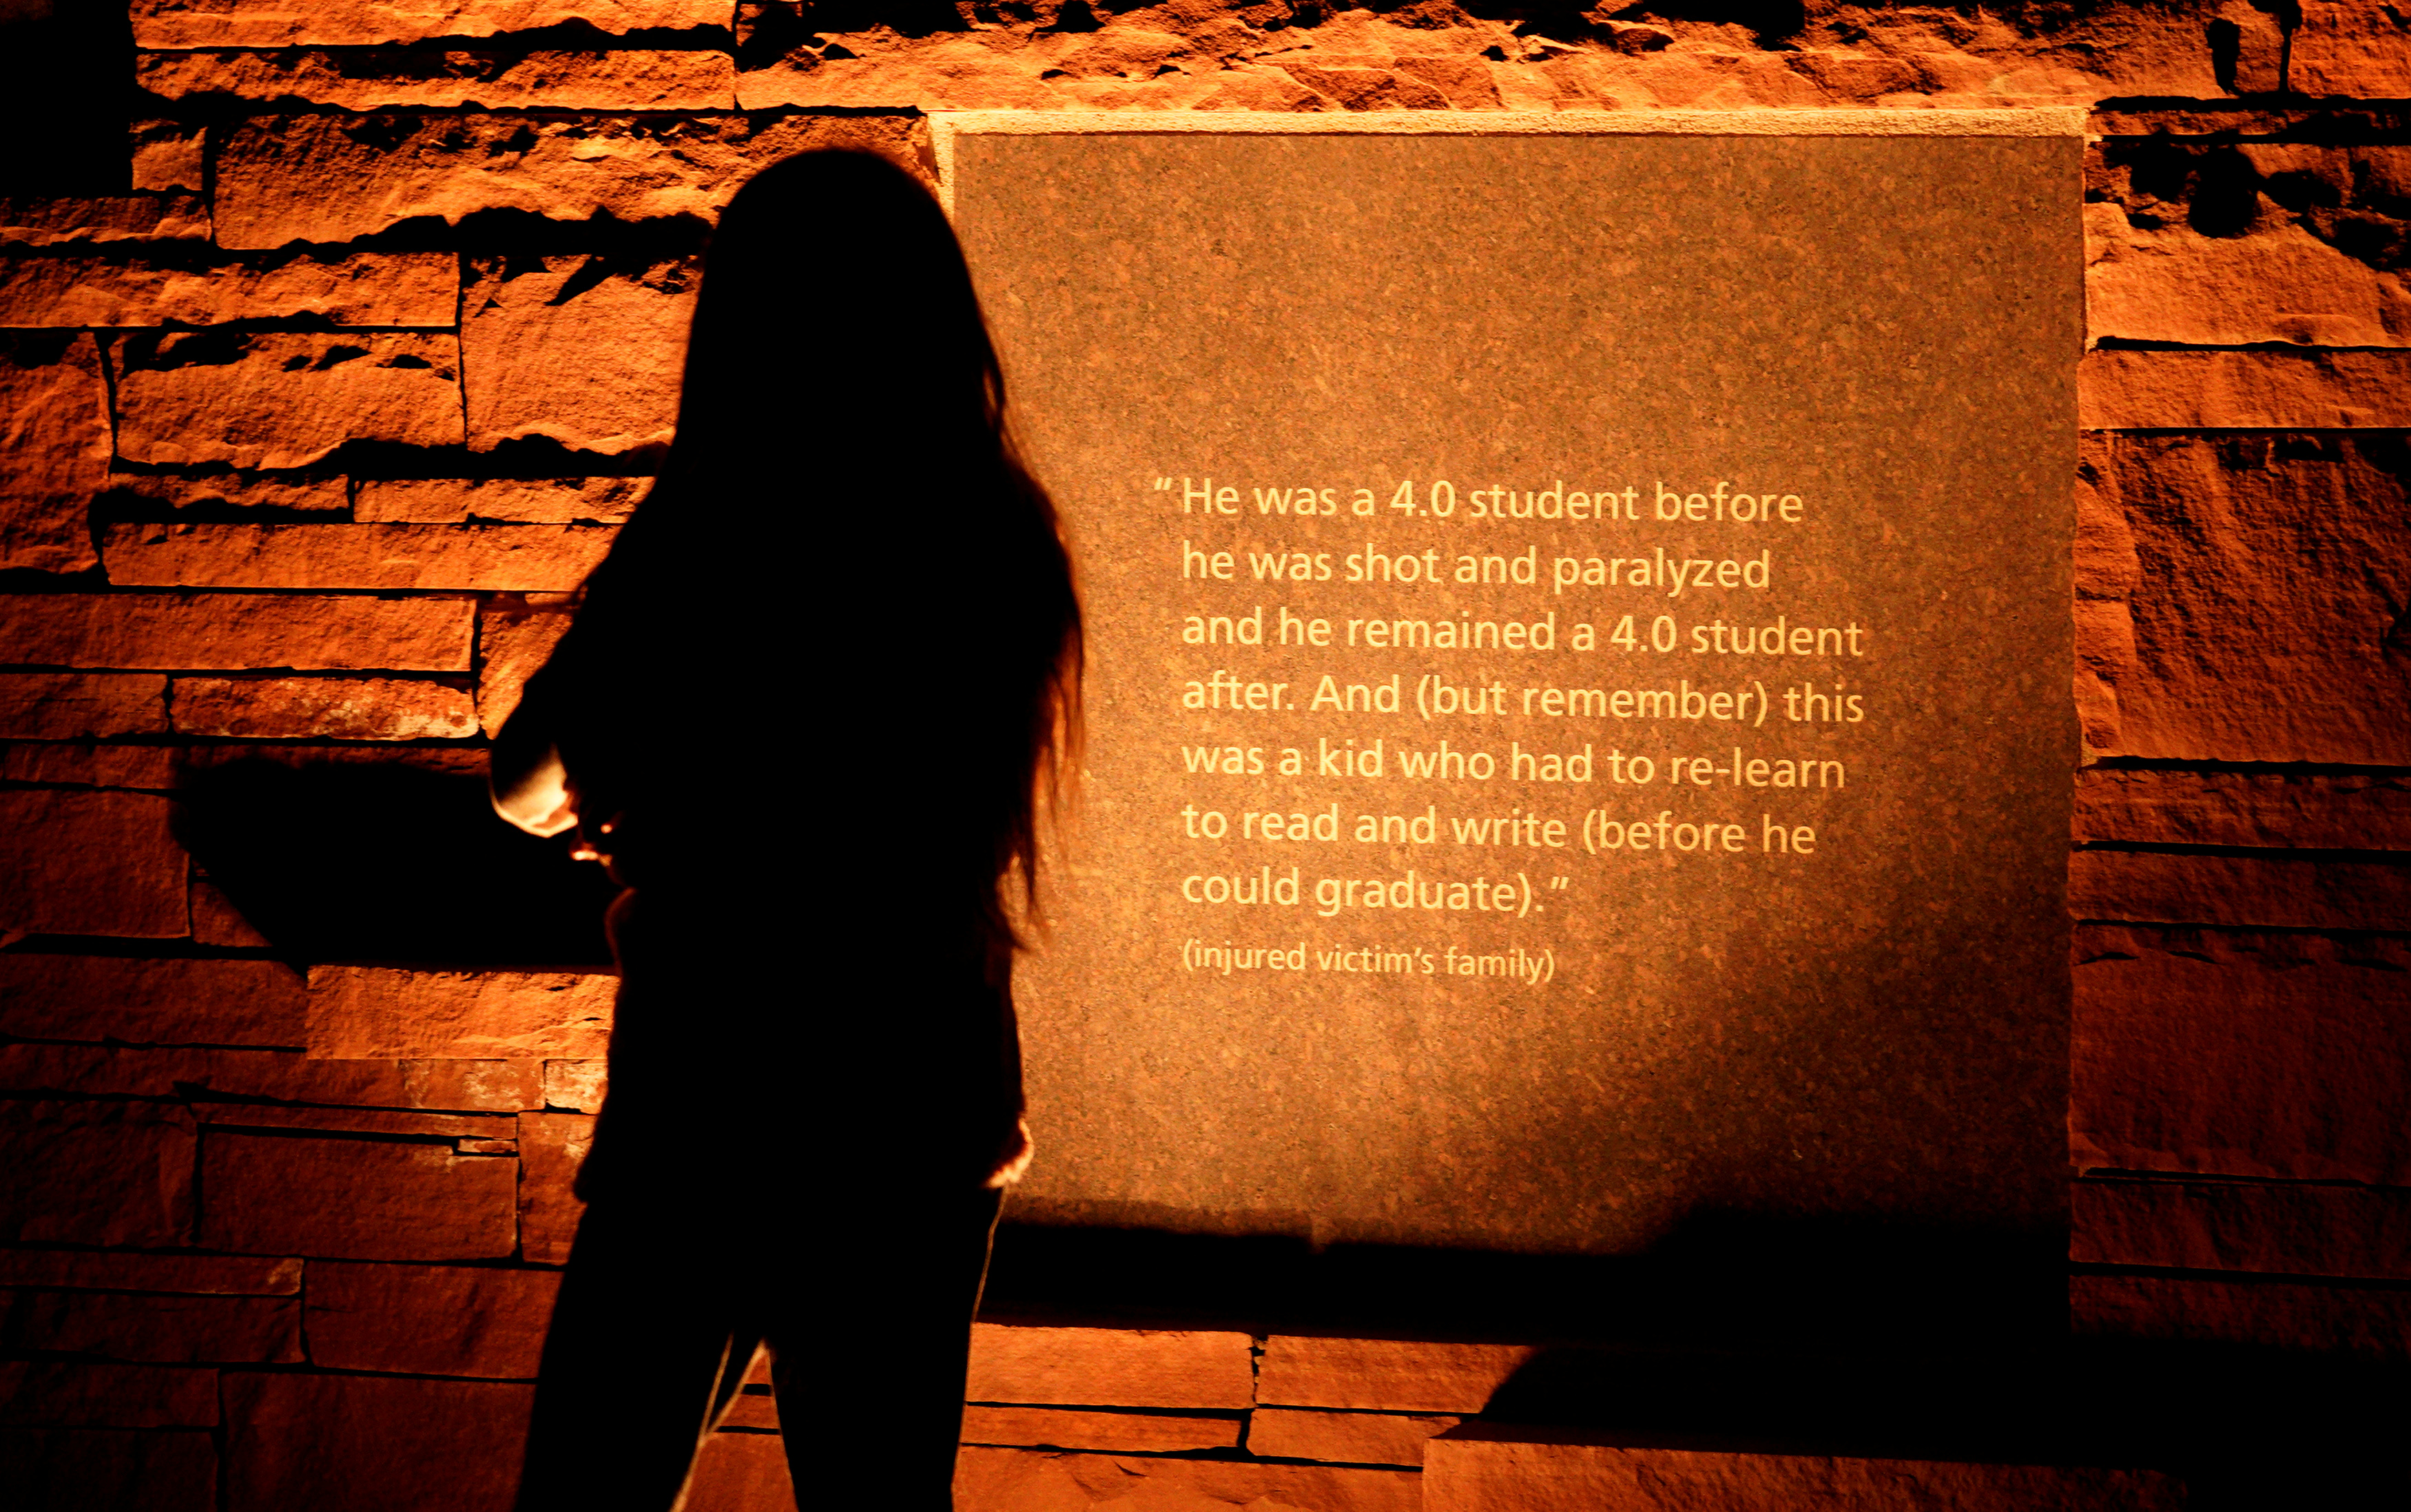 FILE PHOTO: People visit the Columbine memorial after teens kicked off a voter registration rally, a day ahead of the 19th anniversary of the massacre at Columbine High School, in Littleton, Colorado, U.S., April 19, 2018. REUTERS/Rick Wilking/File Photo